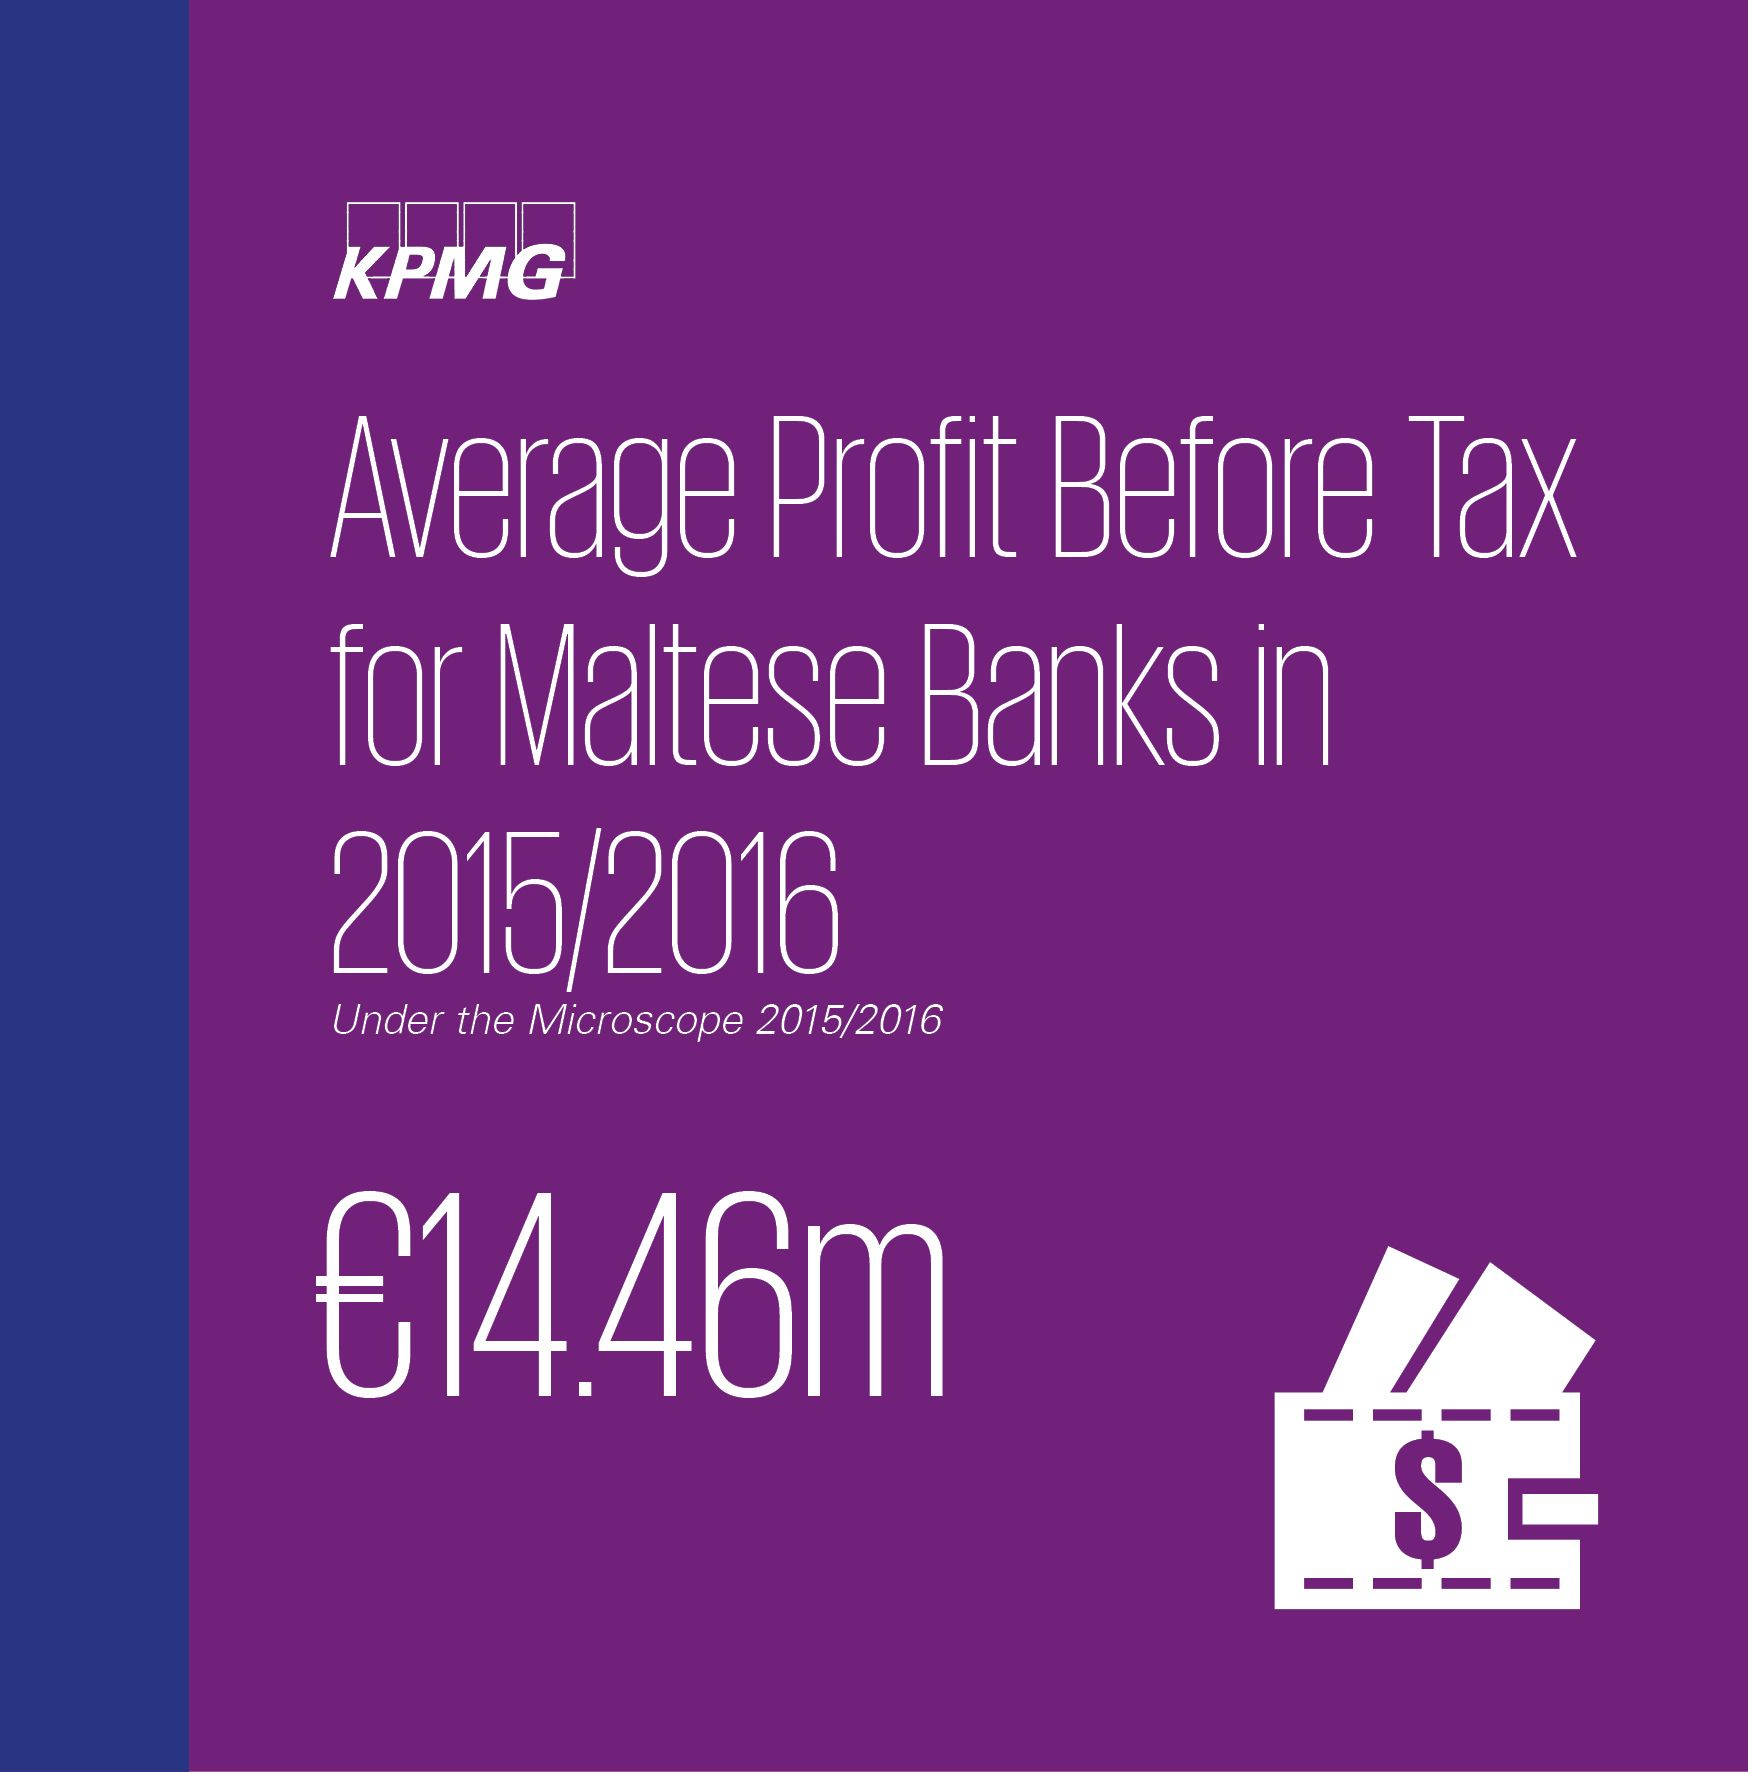 Average Profit Before Tax for Maltese Banks in 2015/2016